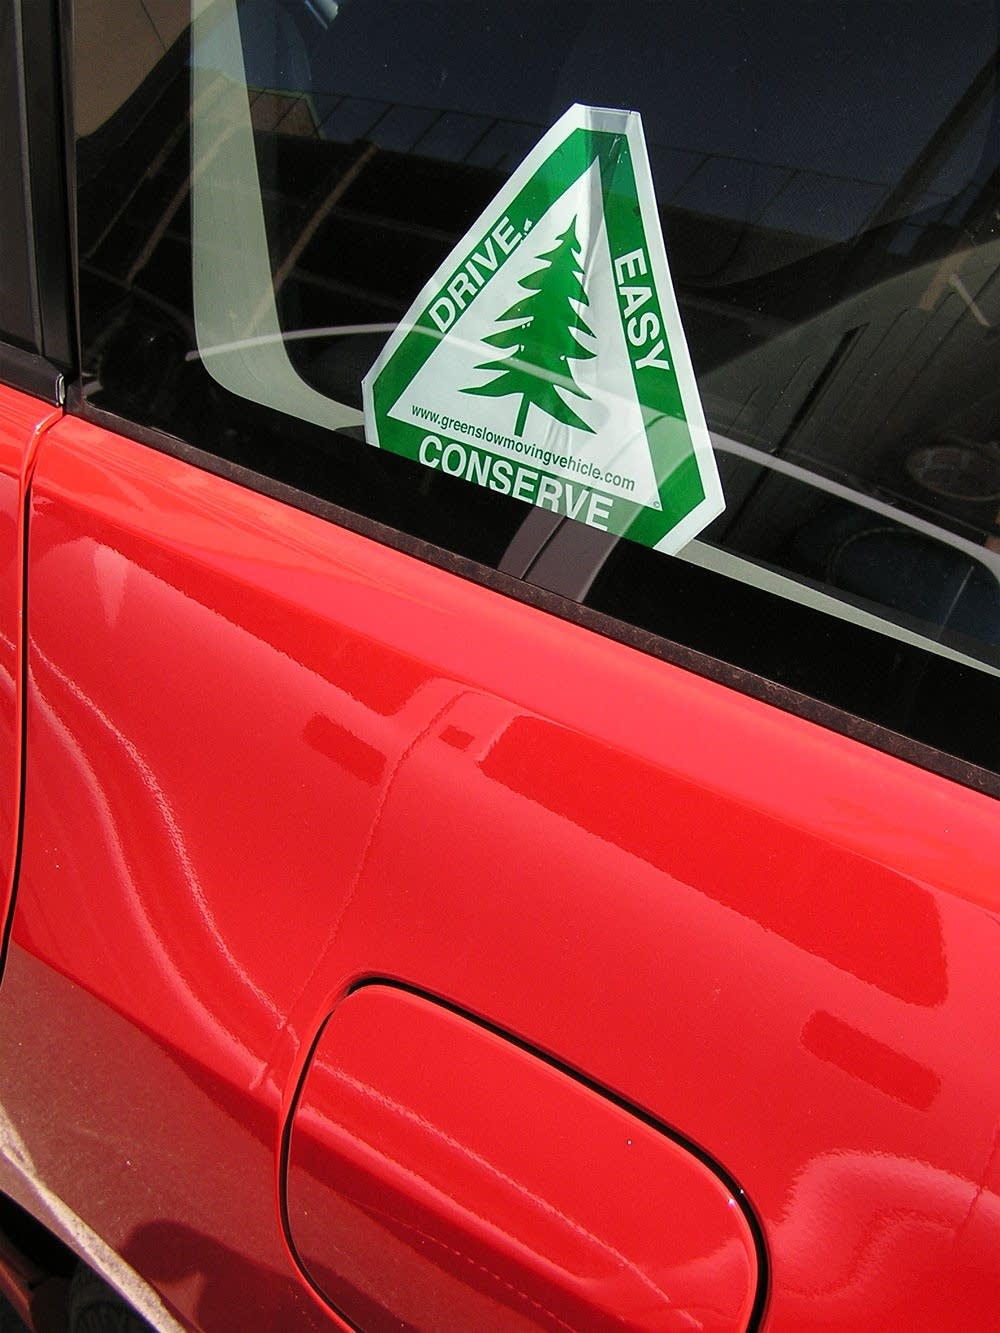 'Drive easy' decal